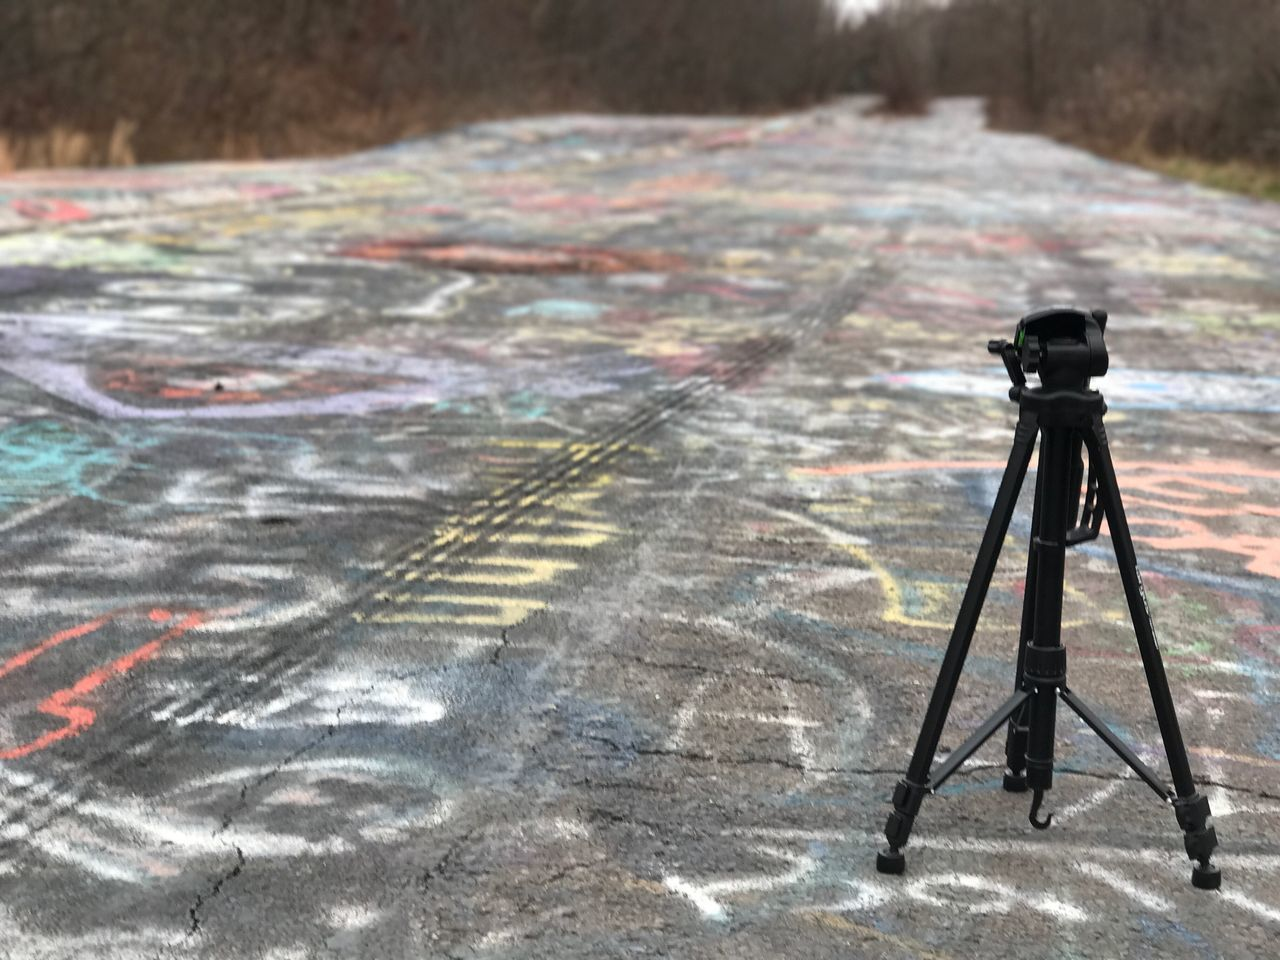 tripod, day, no people, outdoors, photography themes, camera - photographic equipment